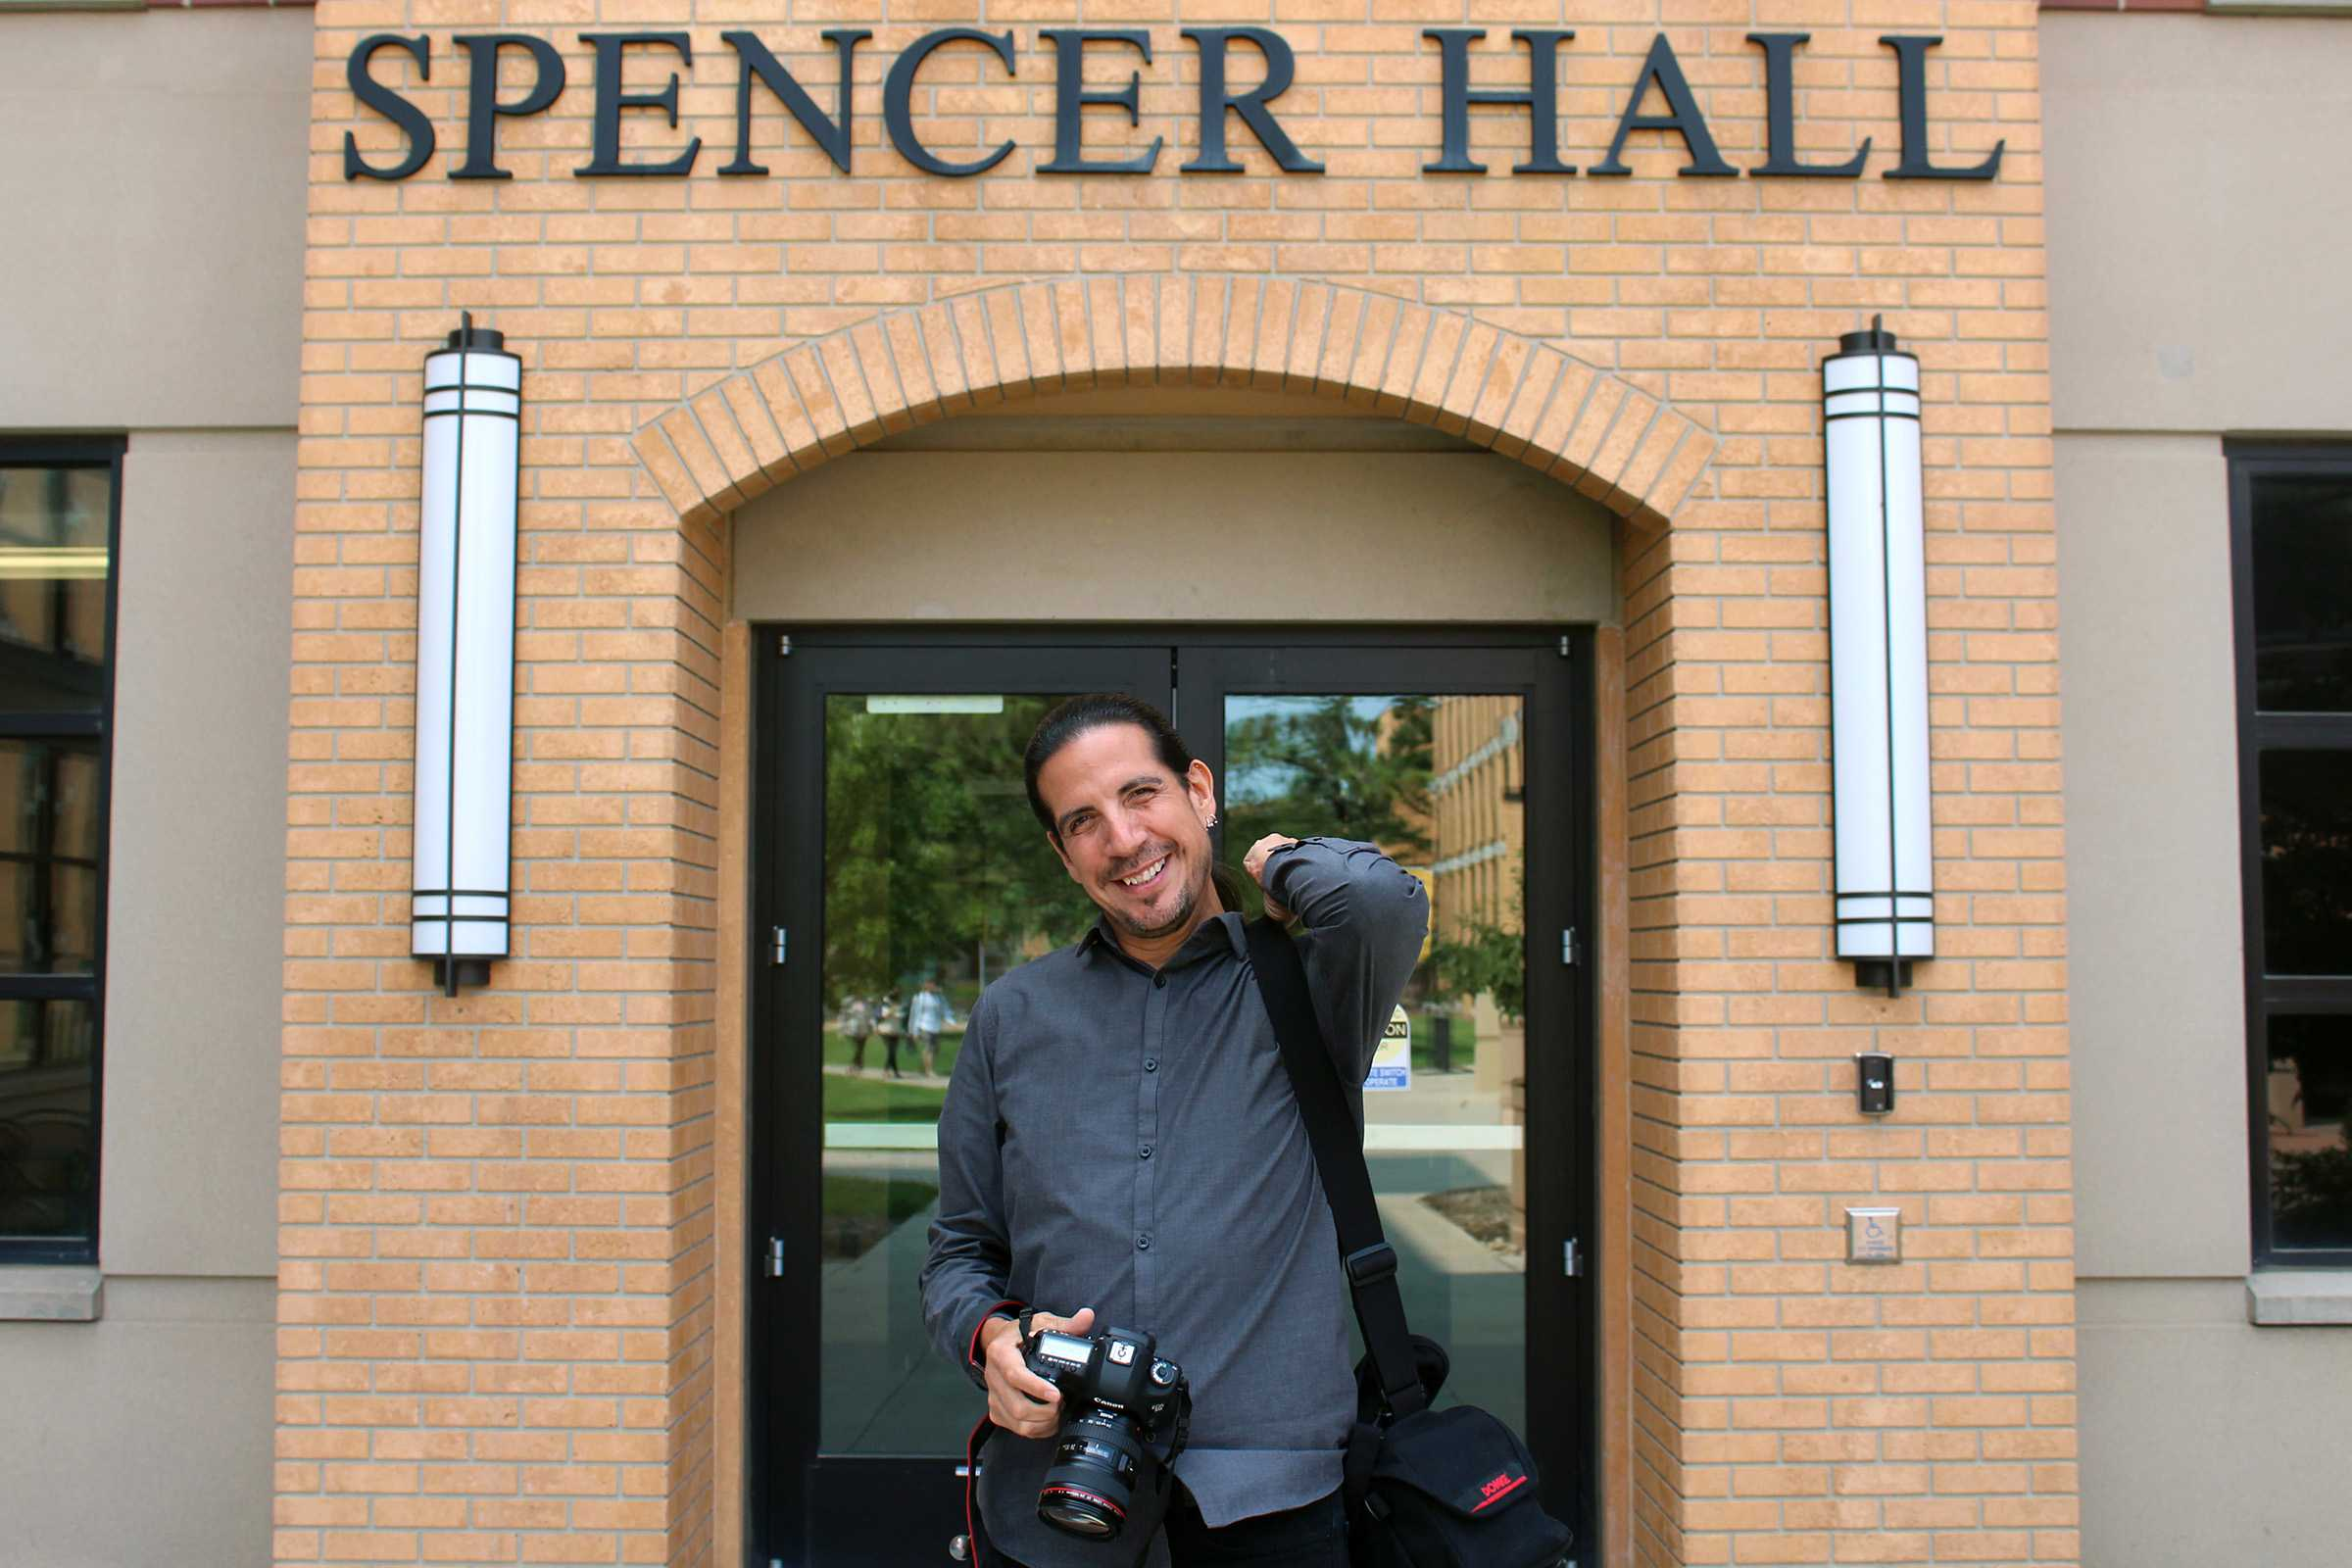 MIRANDA SAMPSON Frank Robertson, instructor at the School of Communication and Journalism, poses in front of Spencer Hall which is named after his late mother, Velva Lu Spencer, who was the Native American student adviser during her time on campus.